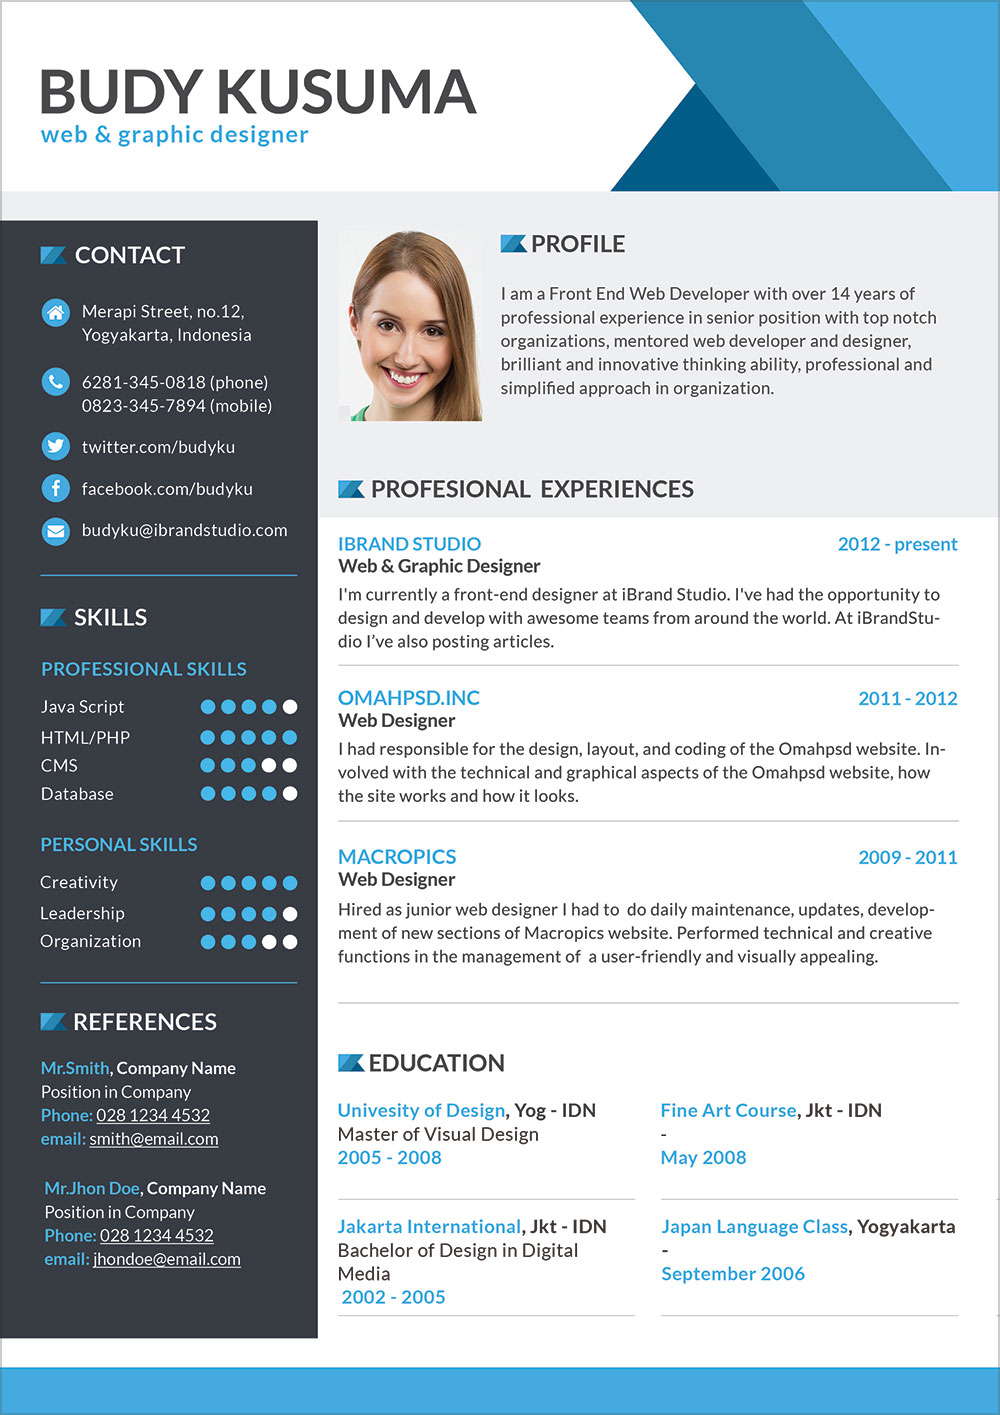 Free-Professional-Resume-Design-Templates-in-Photoshop-PSD-Format